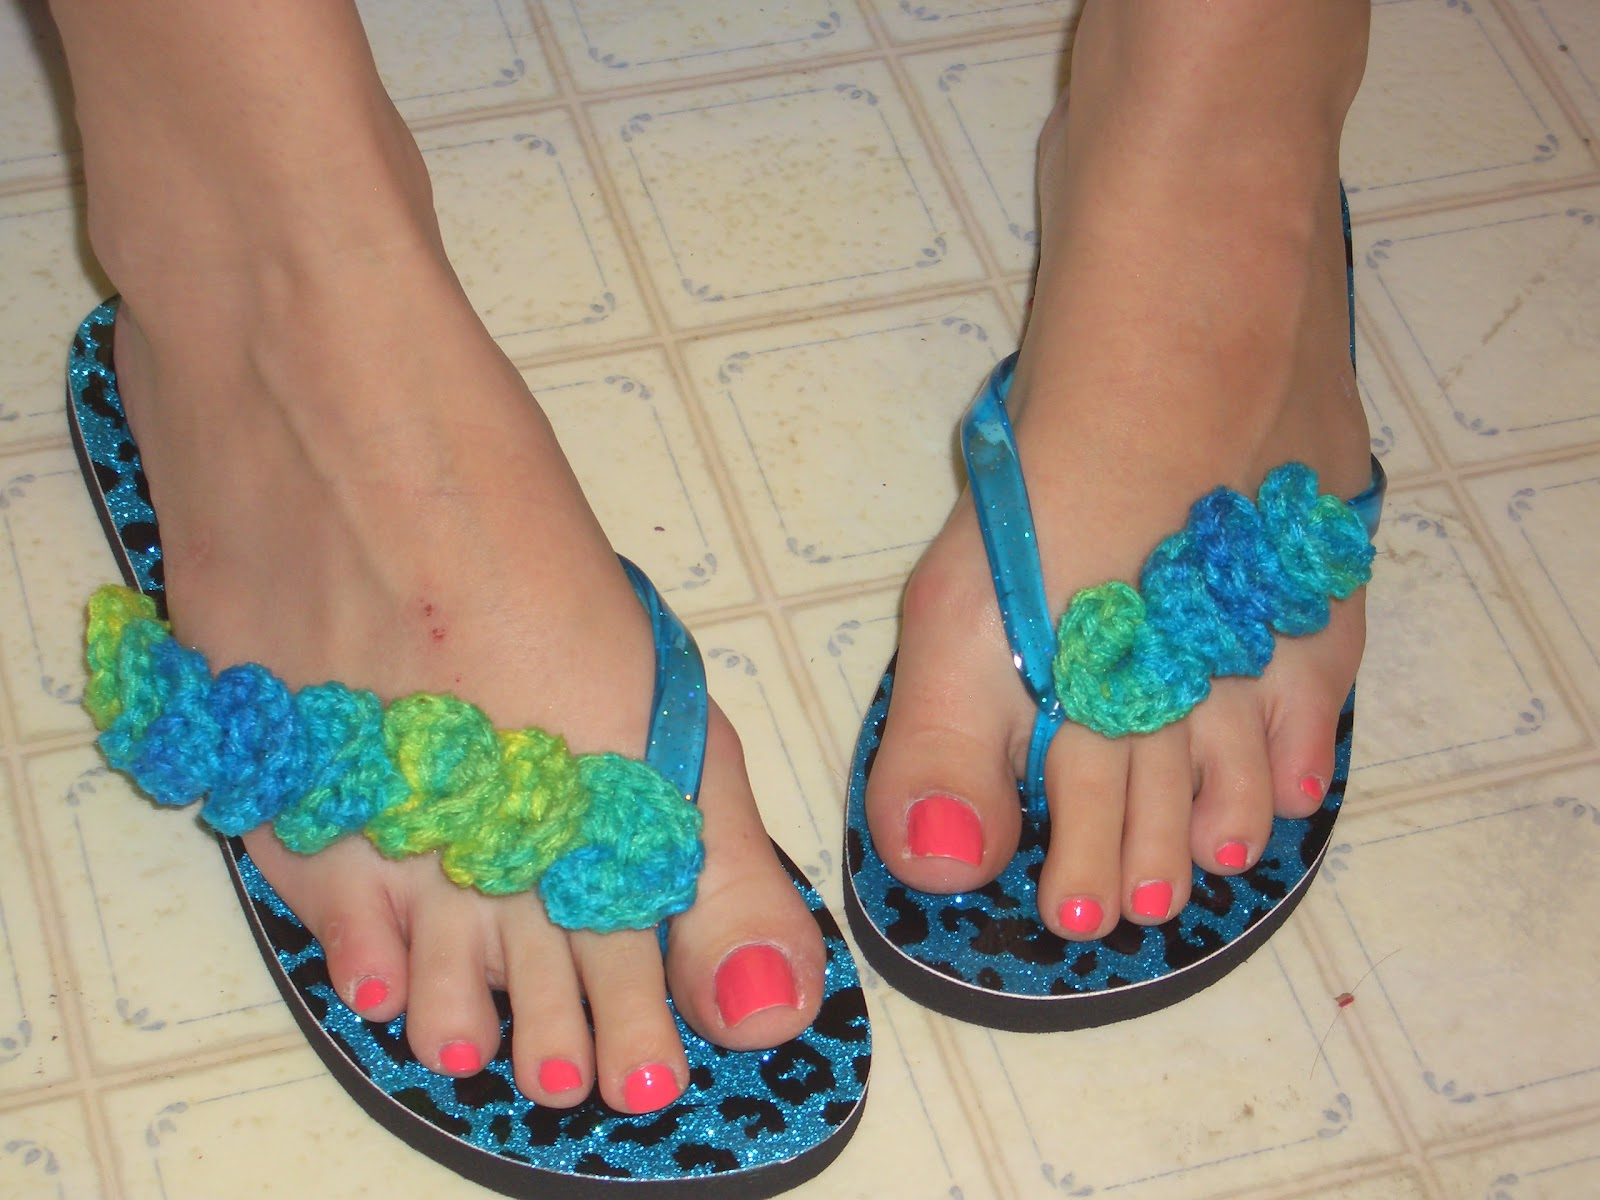 Crochet Patterns Using Flip Flops : Crochet Parfait: Crocodile Flip Flops Demo July 2, 2012